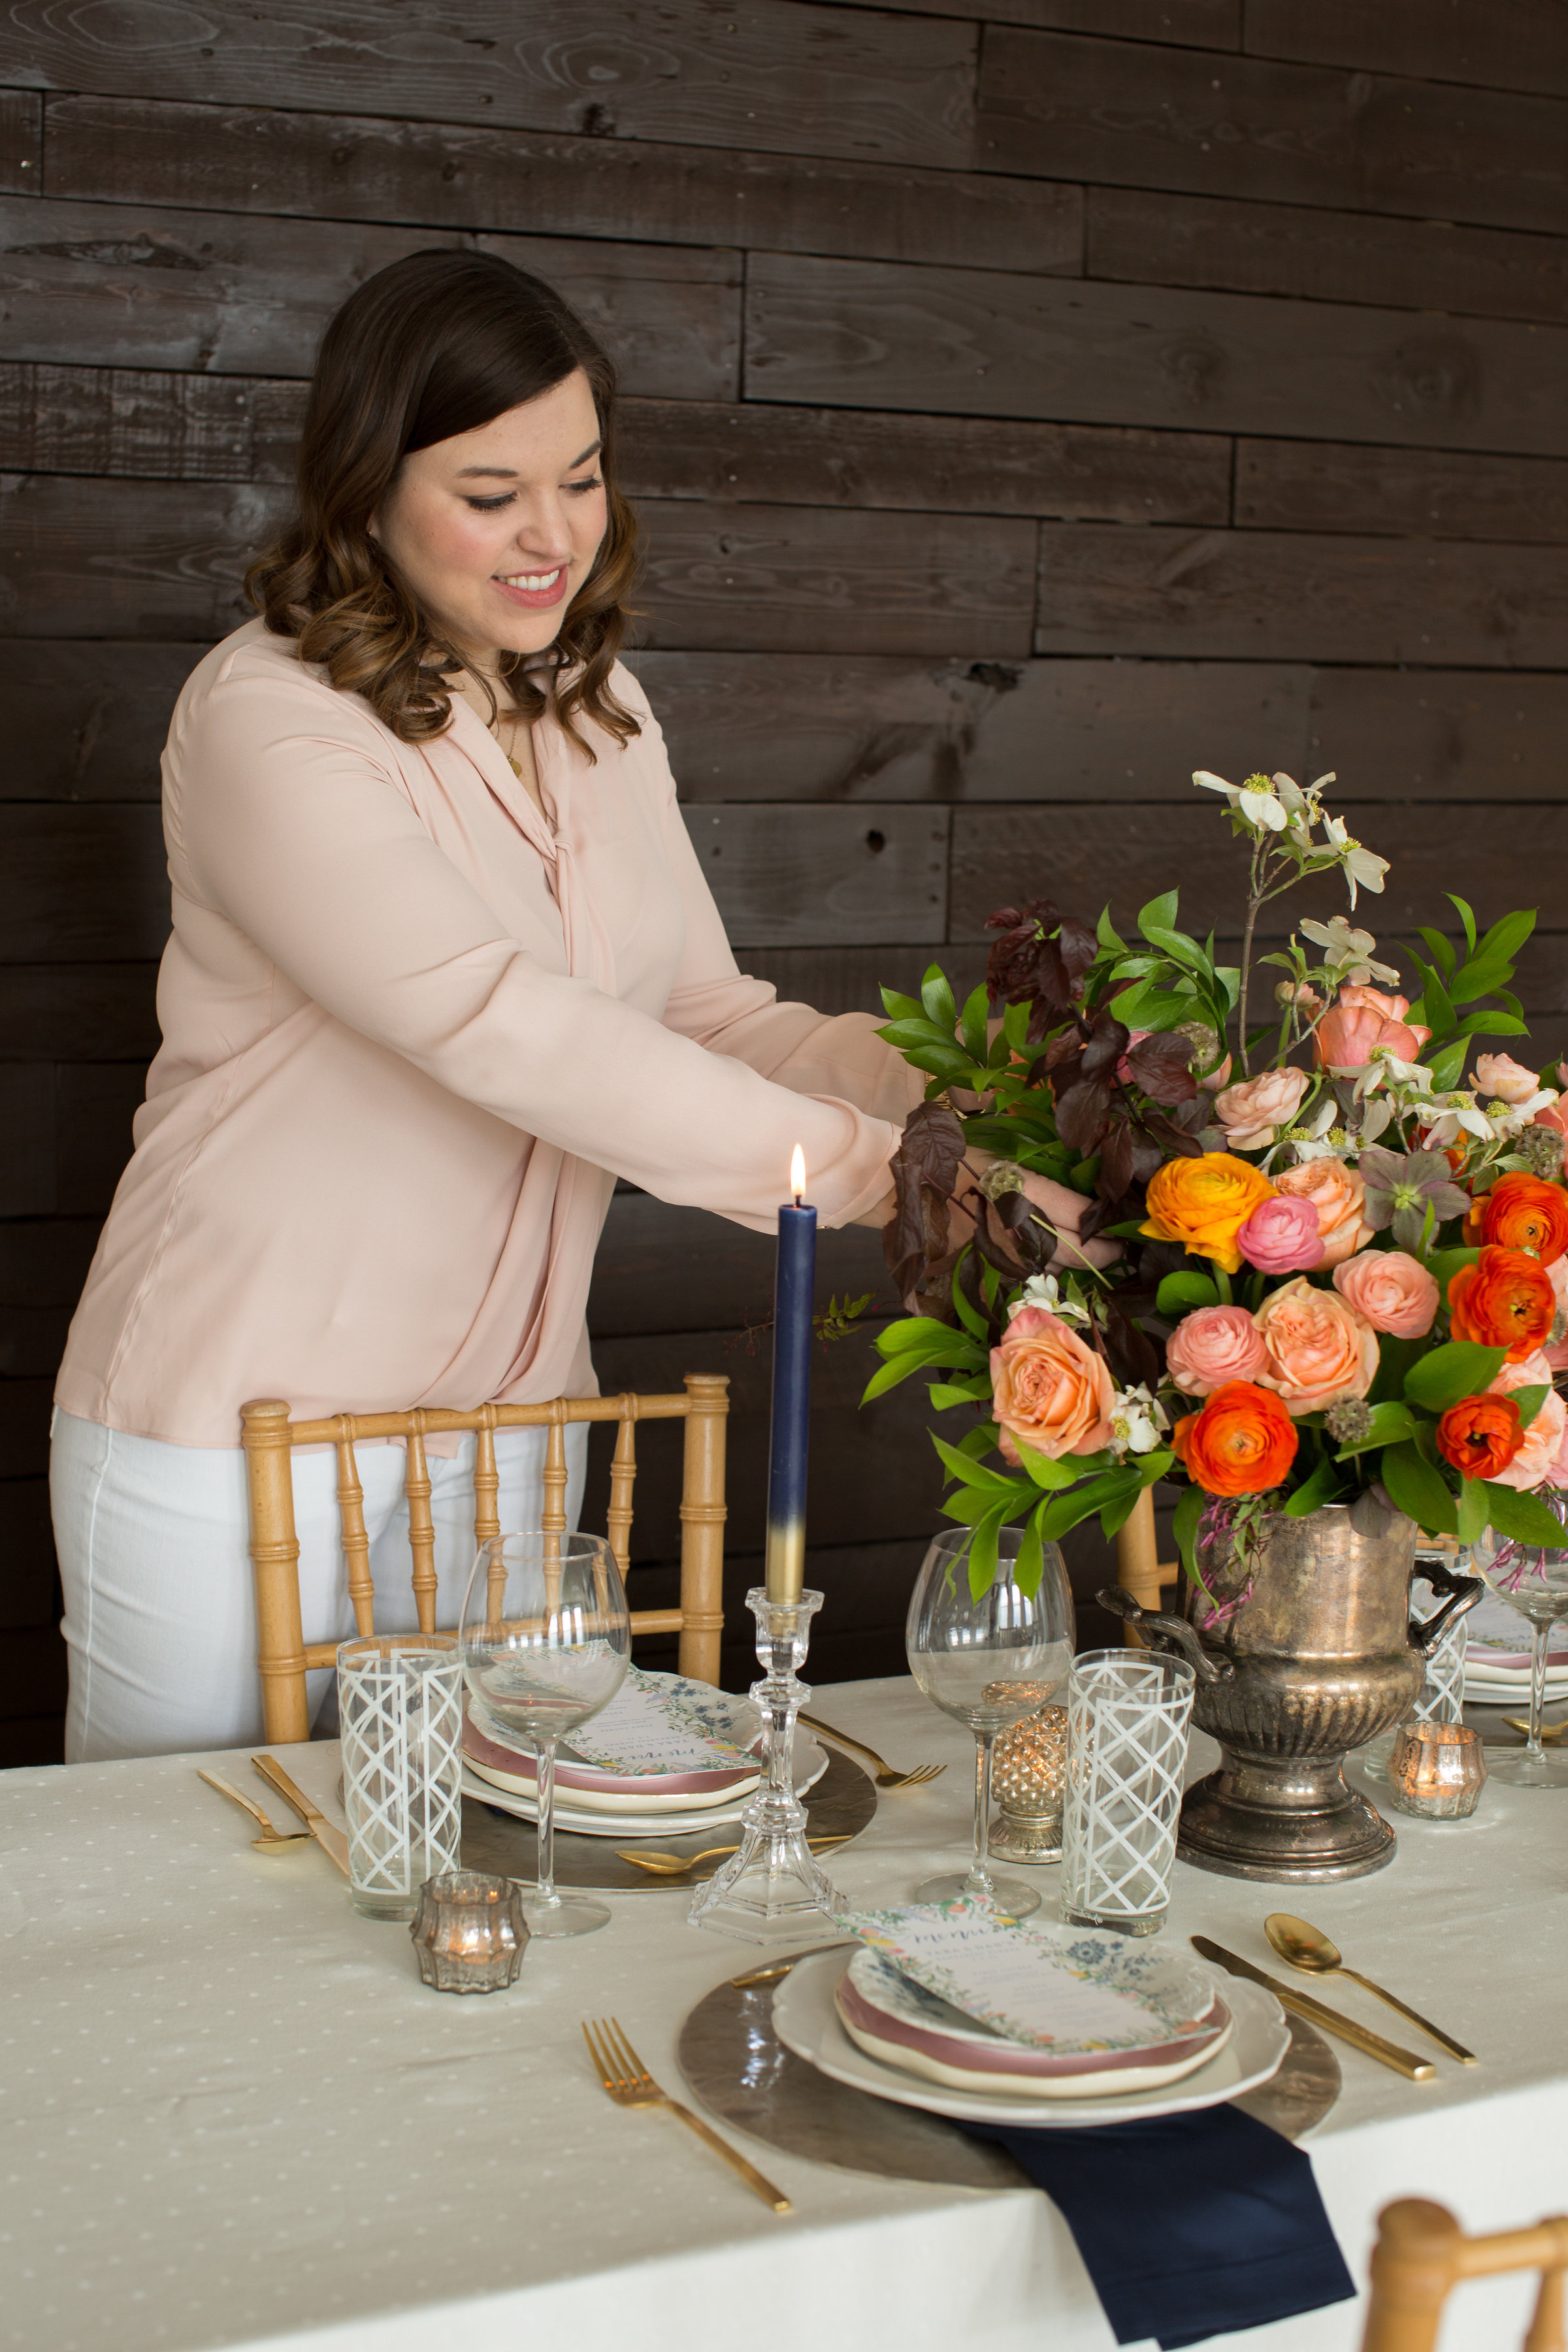 Heirloom Event Co. by Jennifer Kathryn Photography